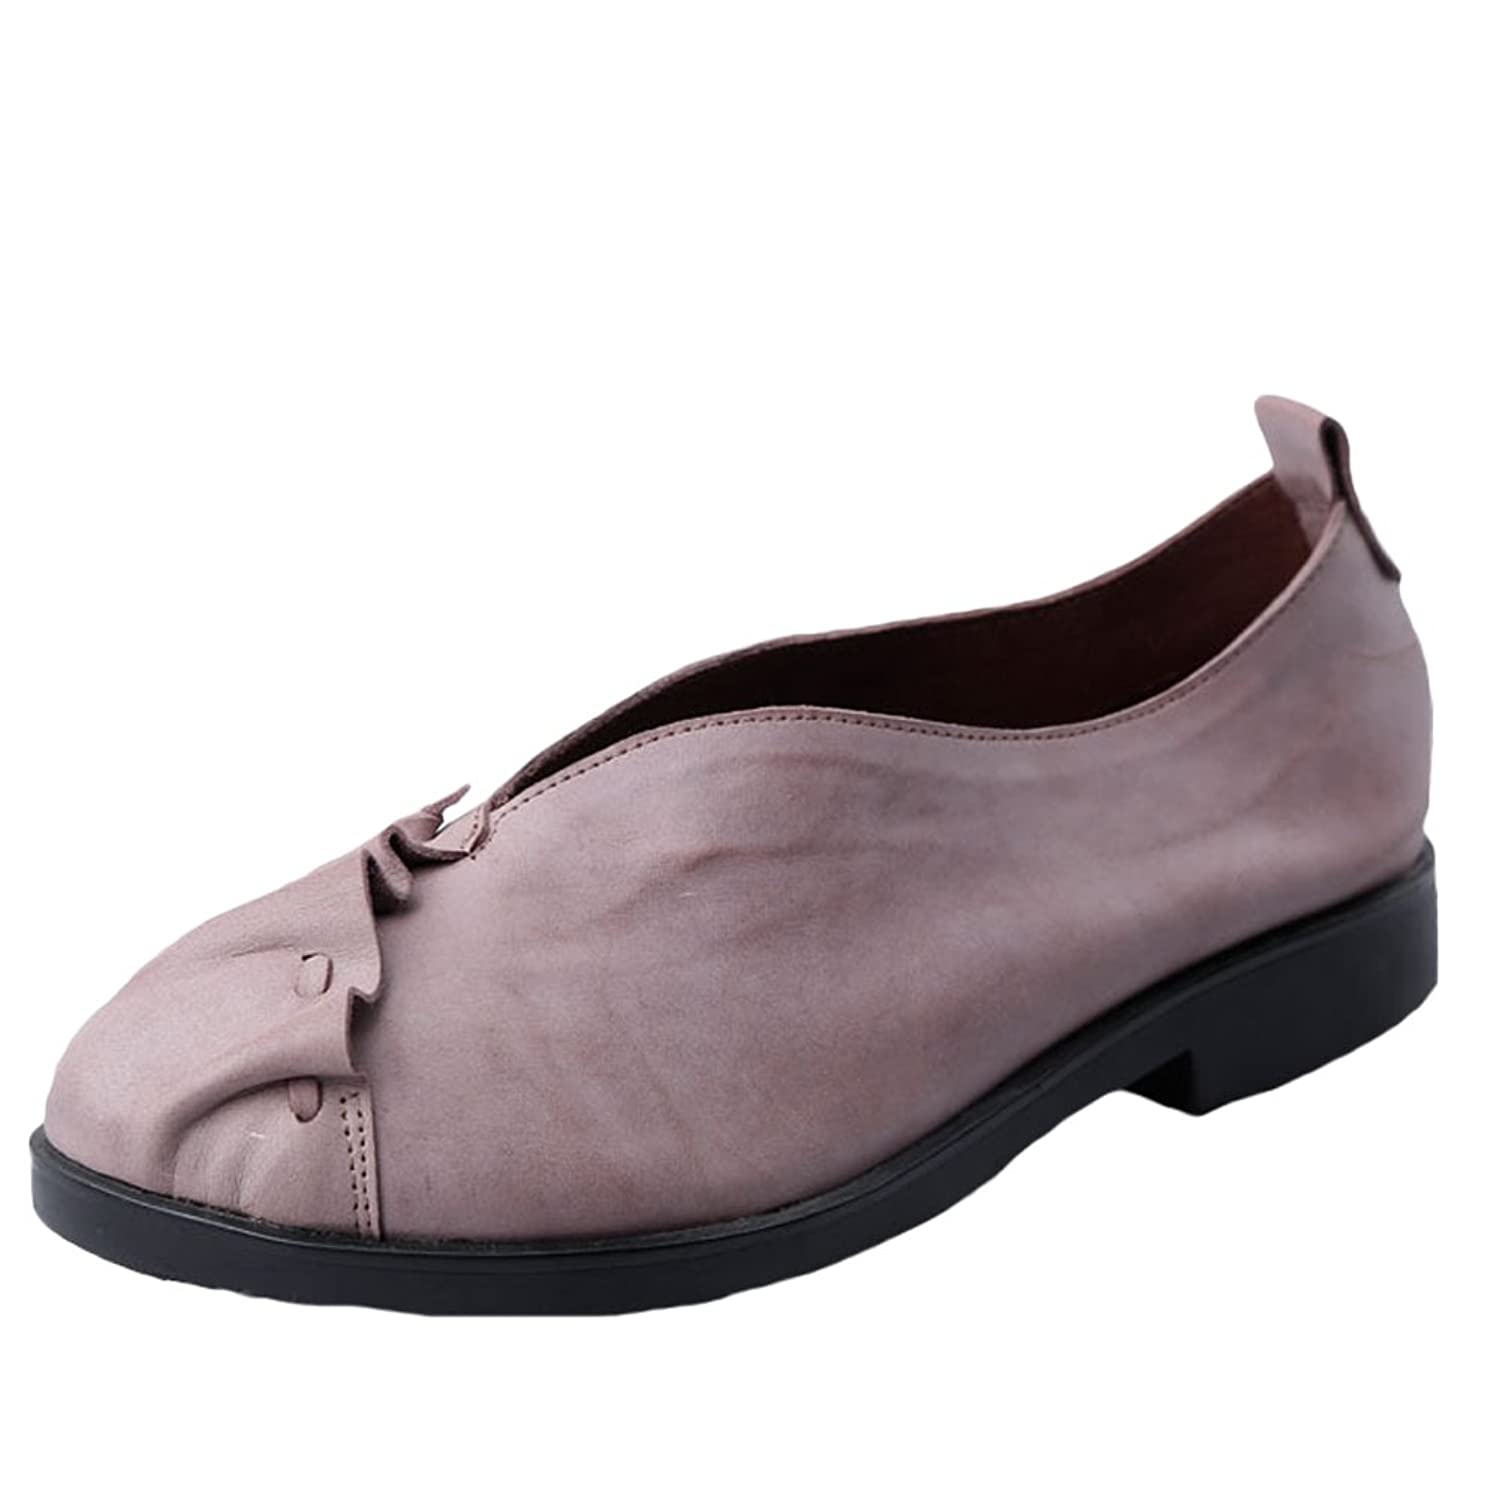 Mordenmiss Women's Spring New Casual Handmade Genuine Leather Travel Slip-On Shoes